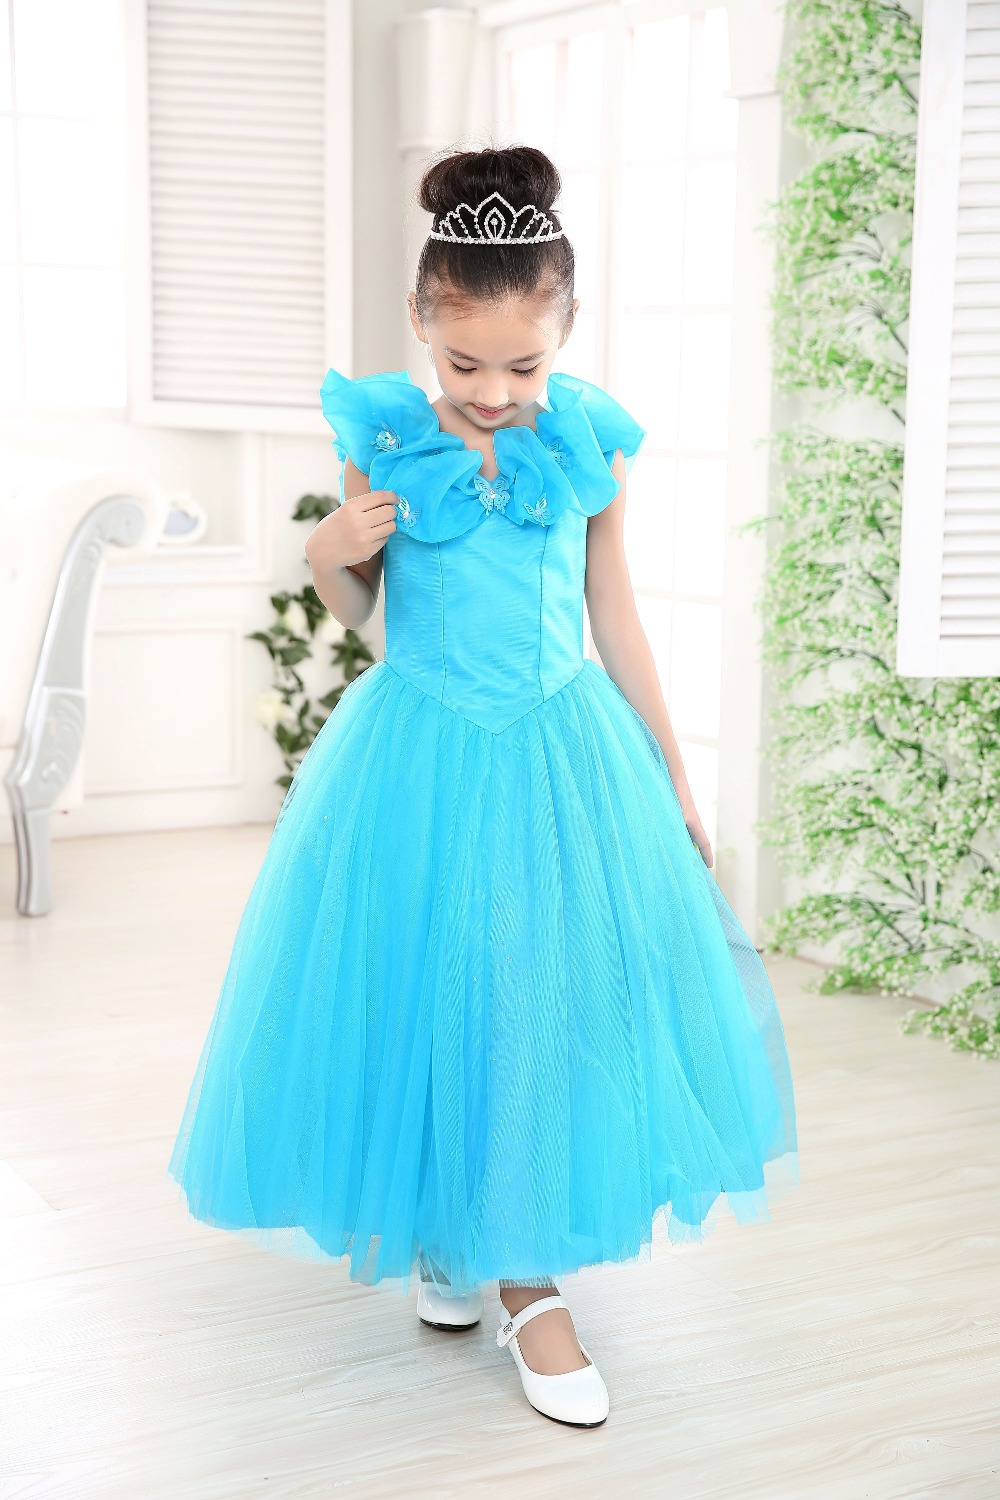 Dorable Toddler Party Dresses Girl Gallery - All Wedding Dresses ...